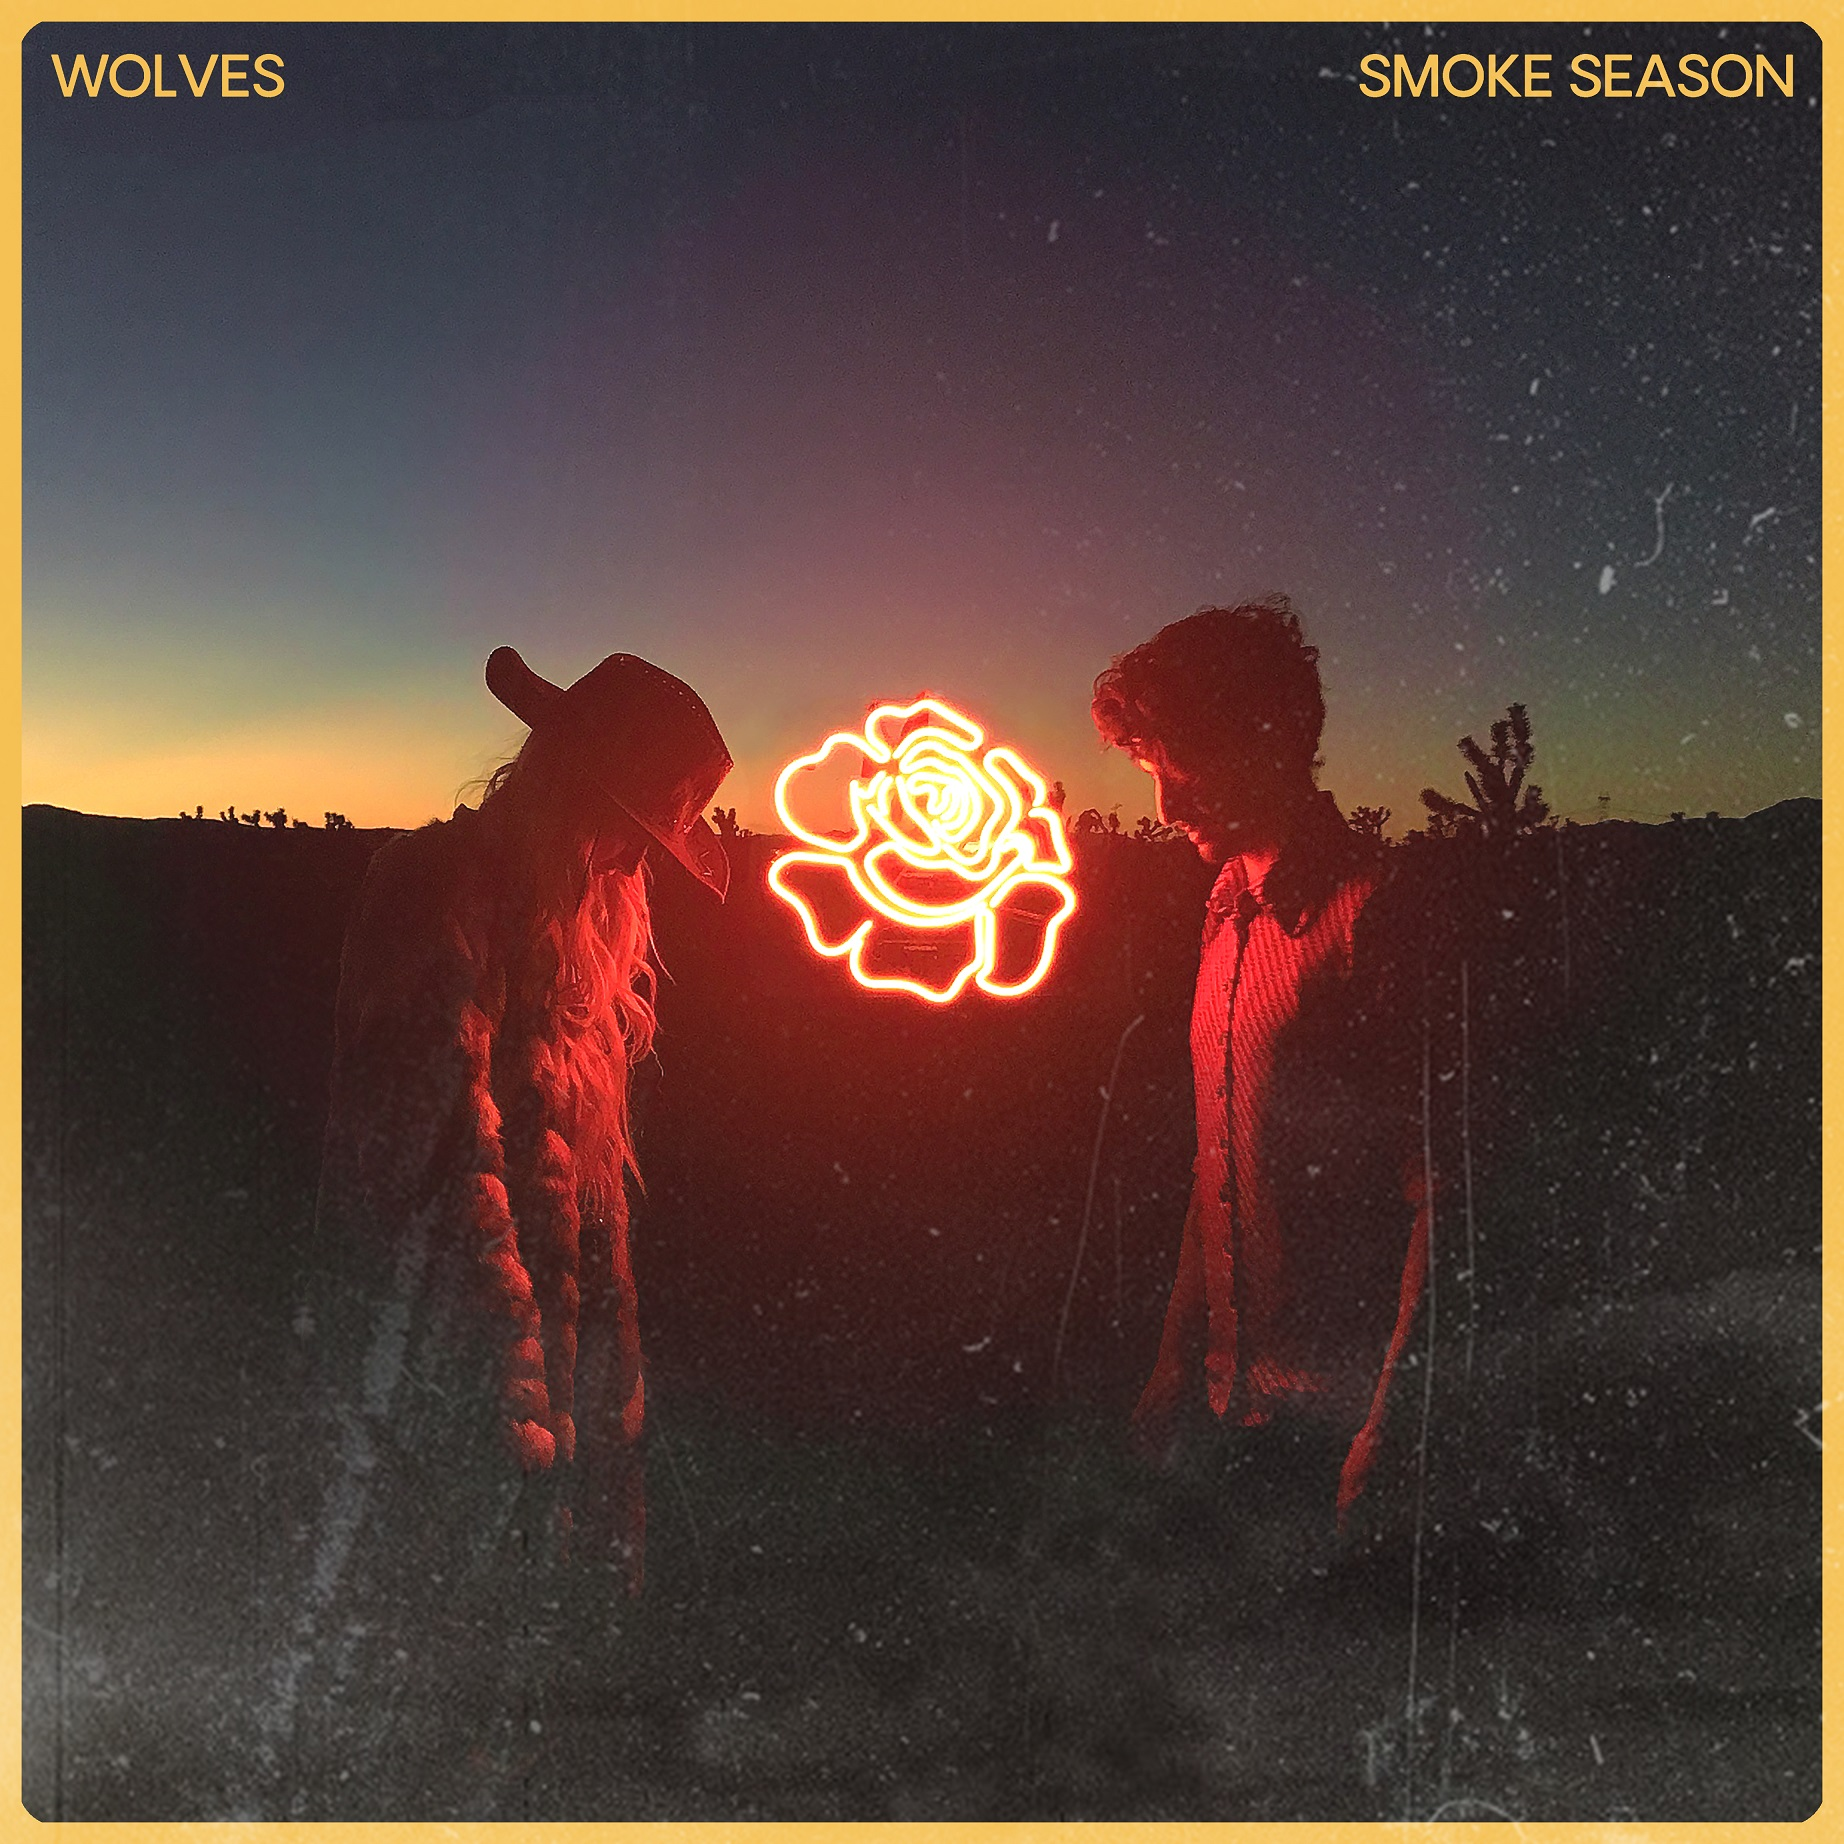 Smoke Season - Wolves